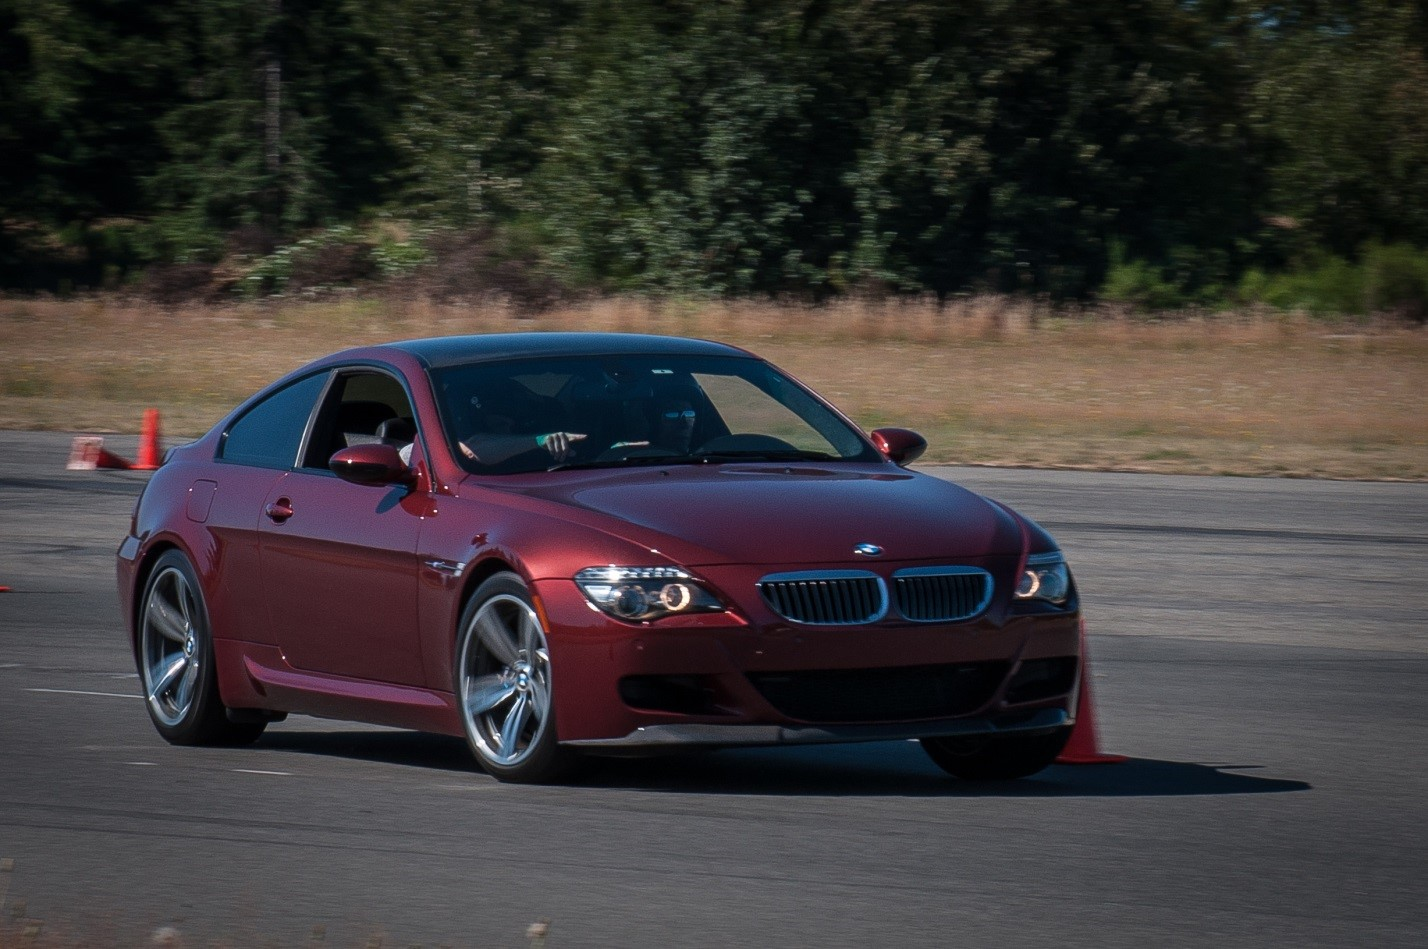 Worksheet. E63 0310 For Sale rare 08 Indianapolis Red Manual V10 BMW M6